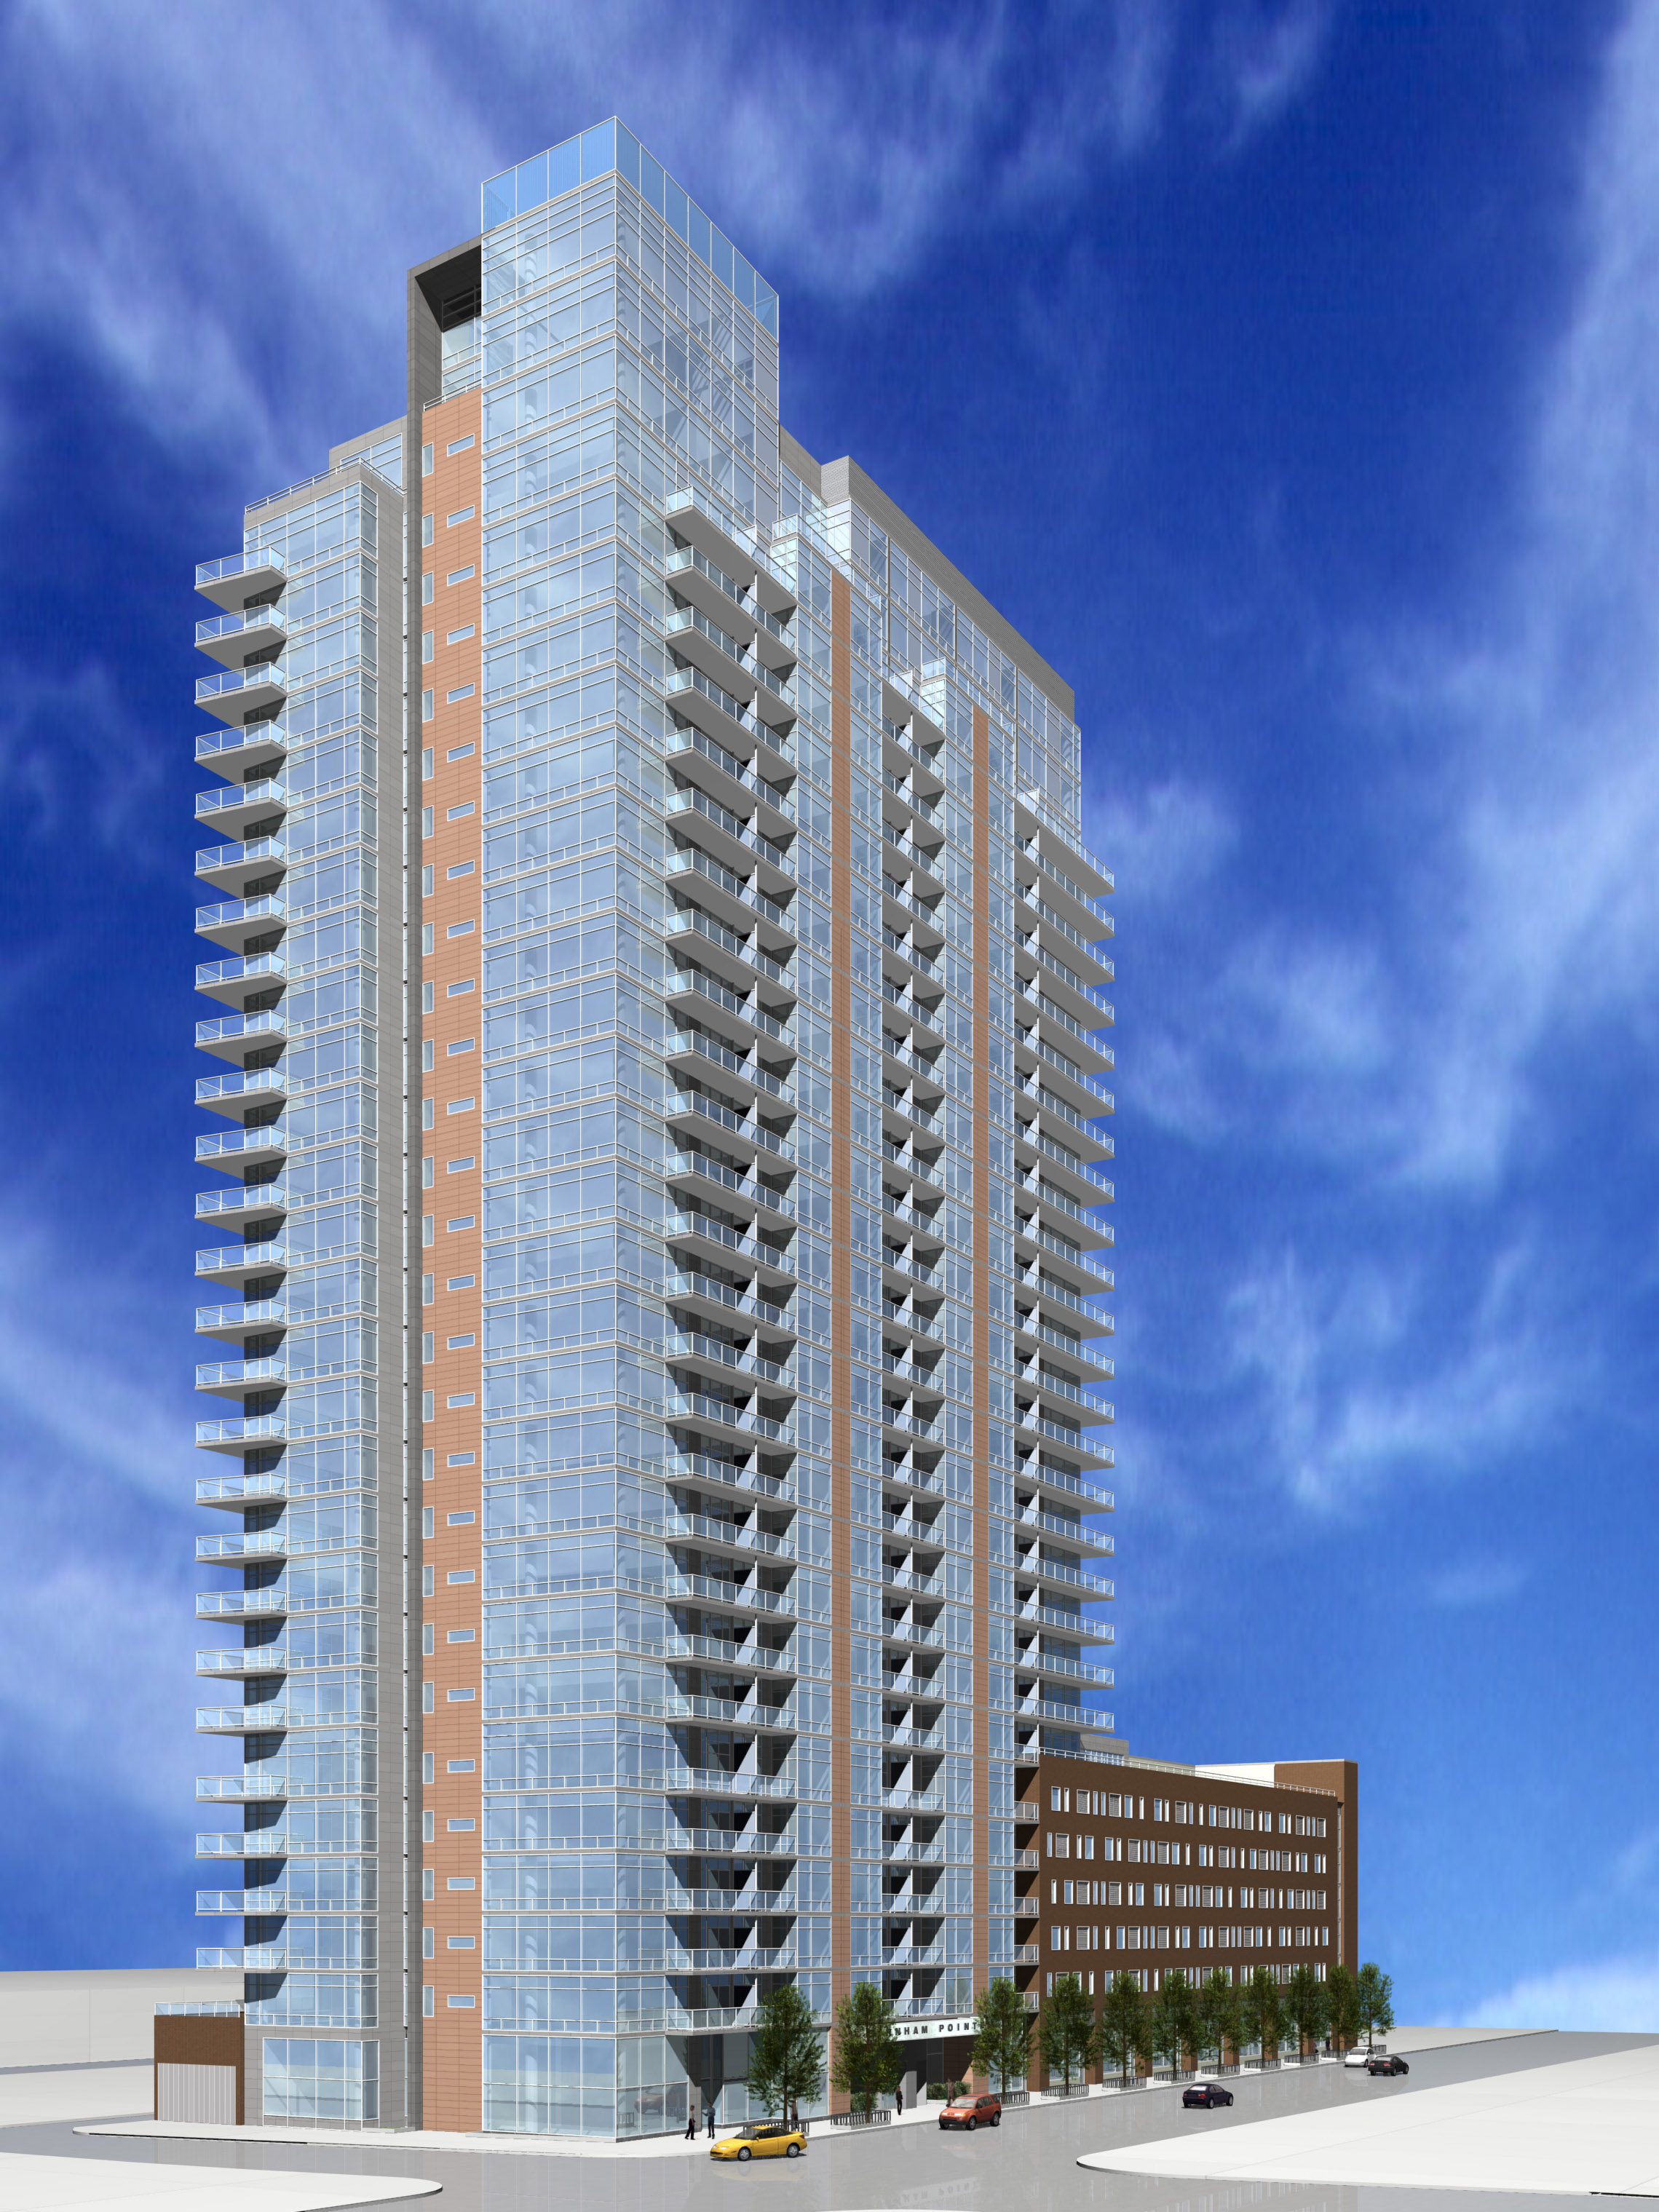 Burnham Pointe and Astoria Tower: Comparing two condos-turned-rentals in the South Loop